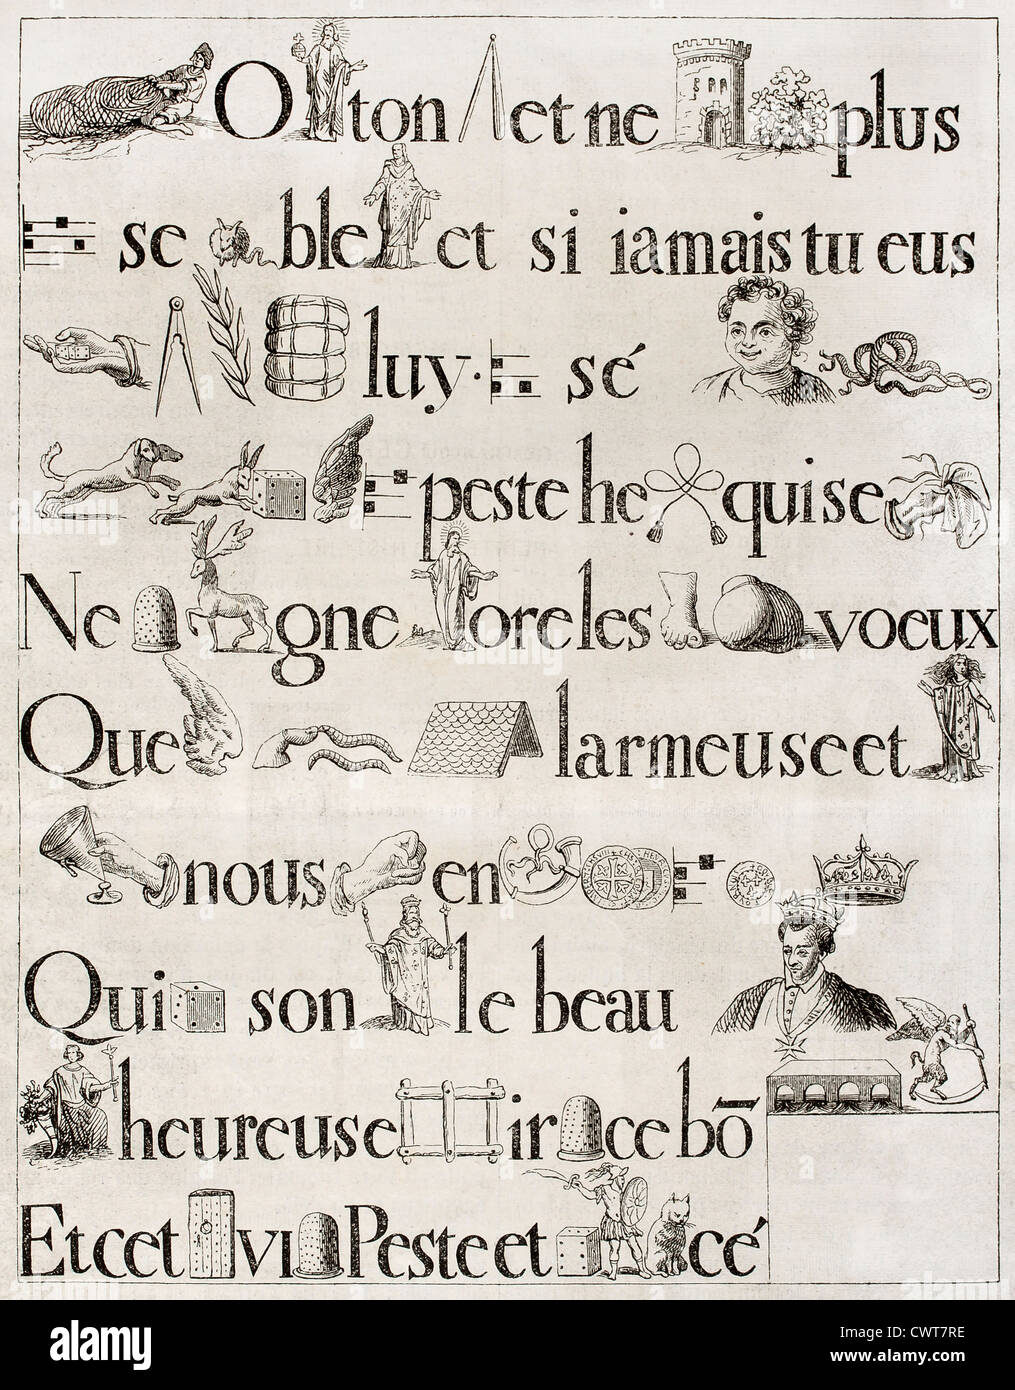 Old French rebus, from antique print of 1613 - Stock Image